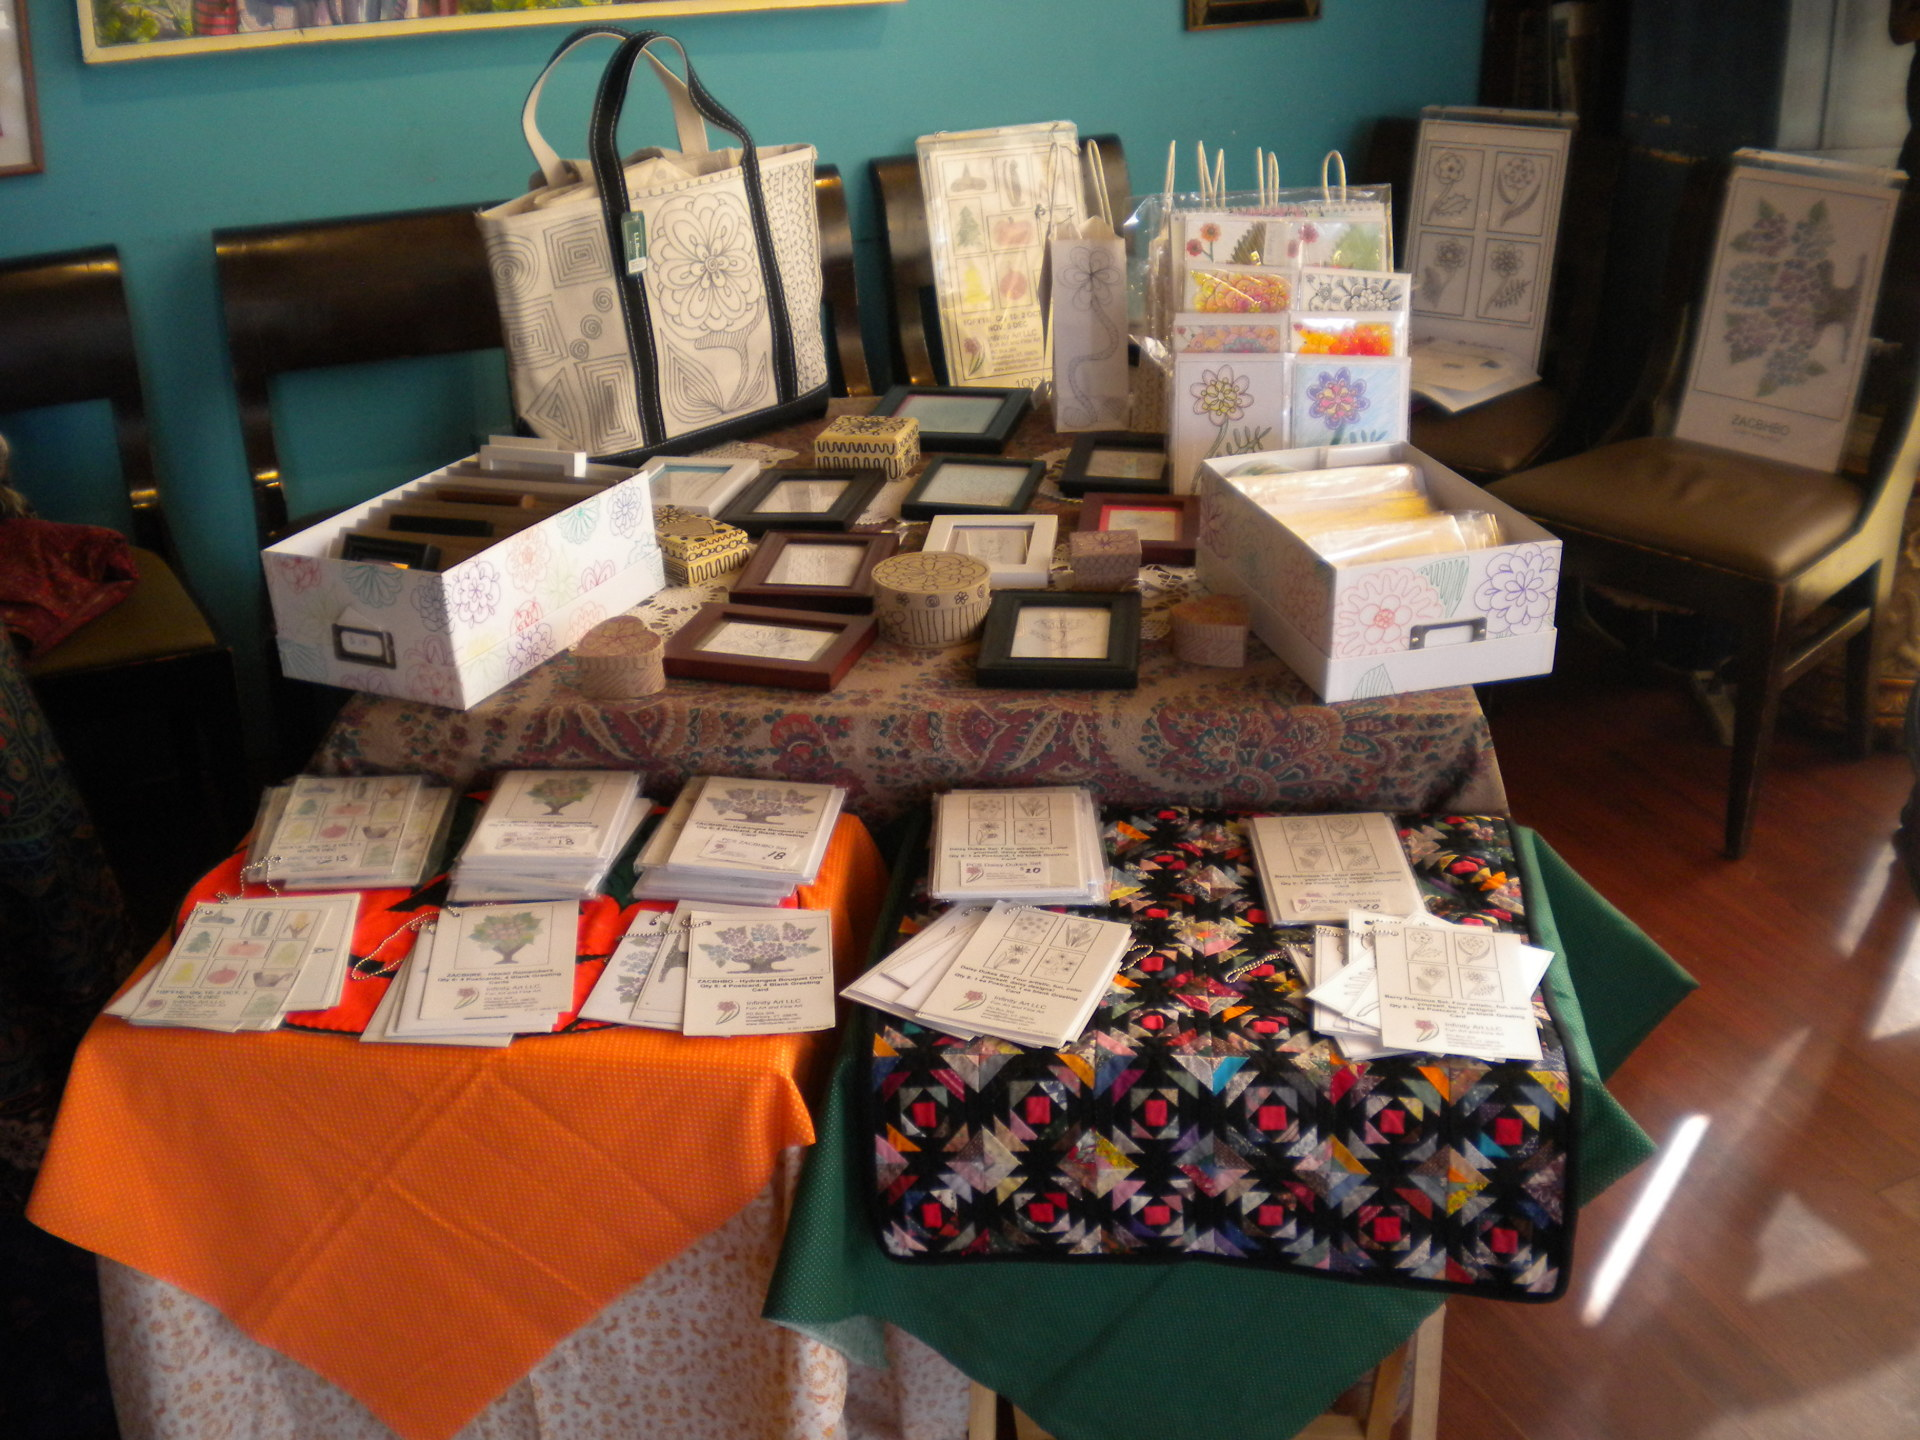 Photo of my table set up at the Tiny Makers Market at the Riverwalk Café, Nashua, NH, Sun 22 Oct 17